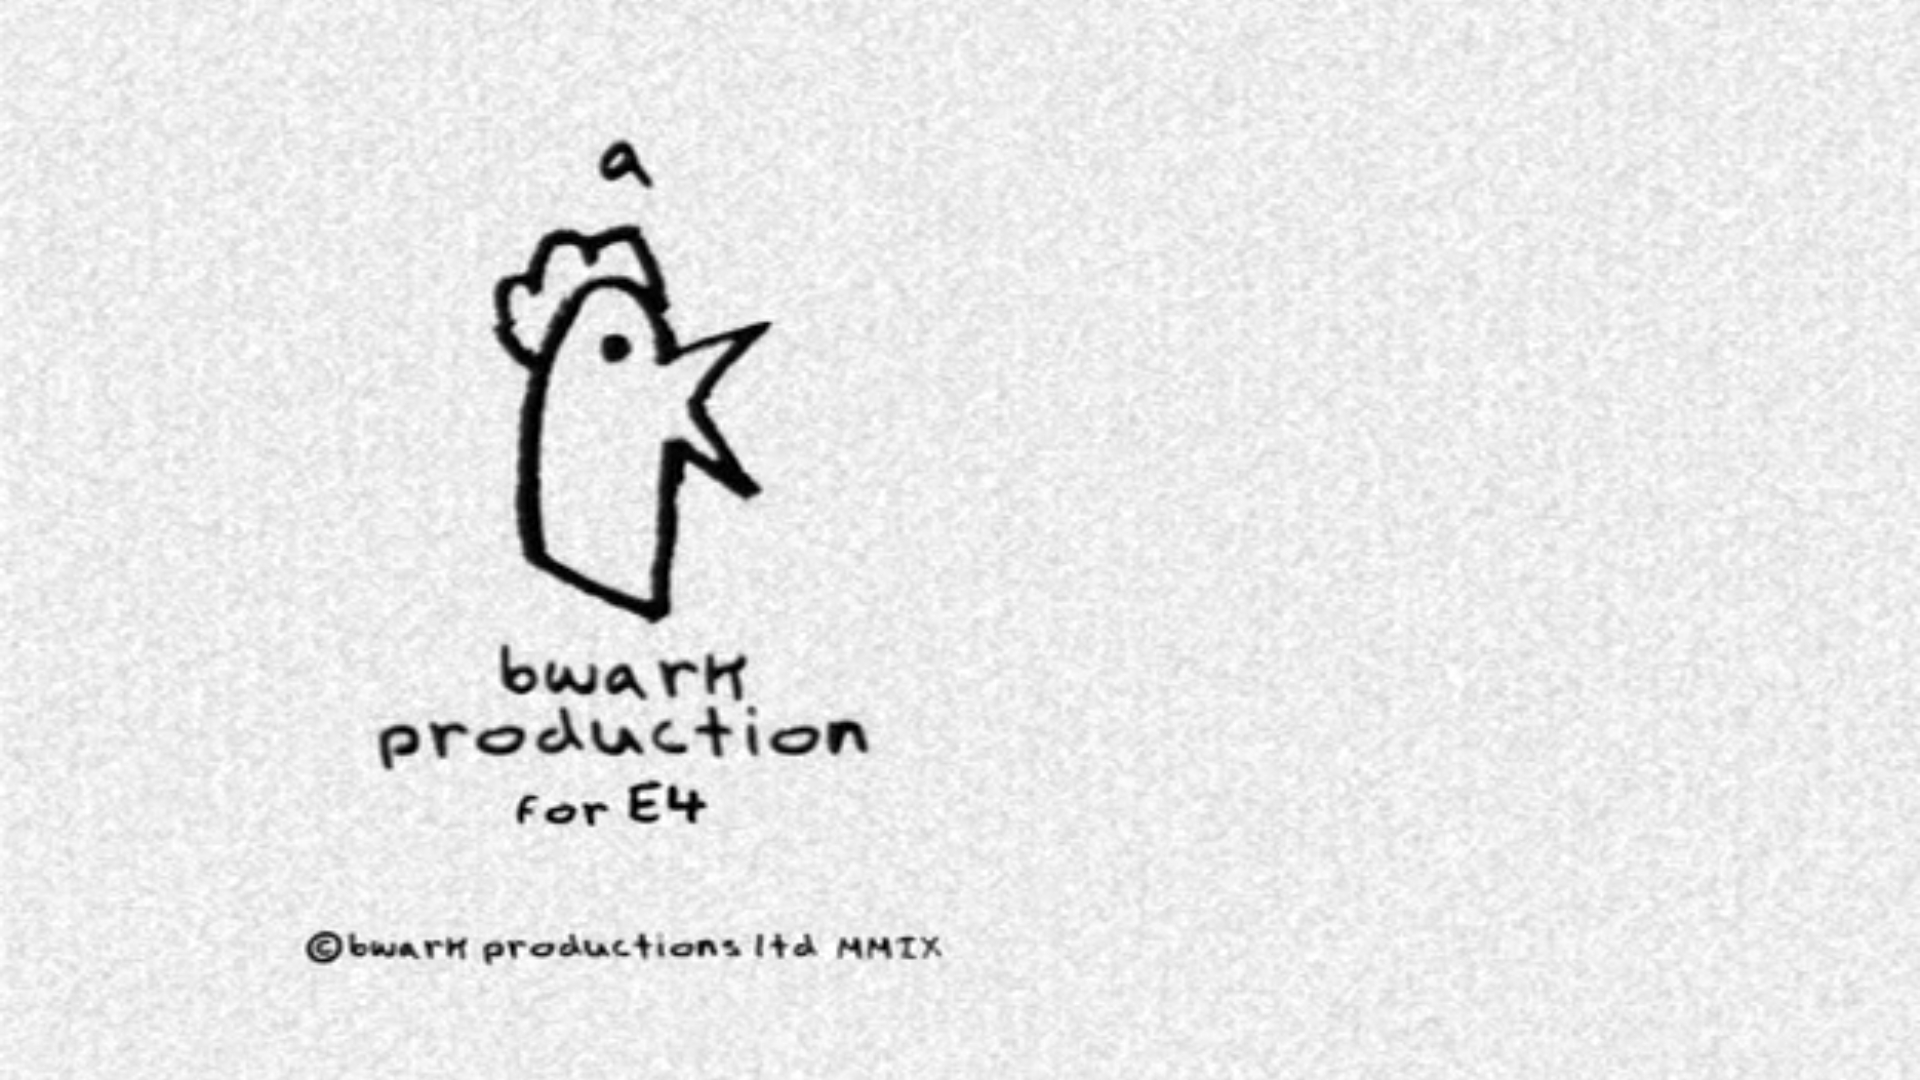 Bwark Productions